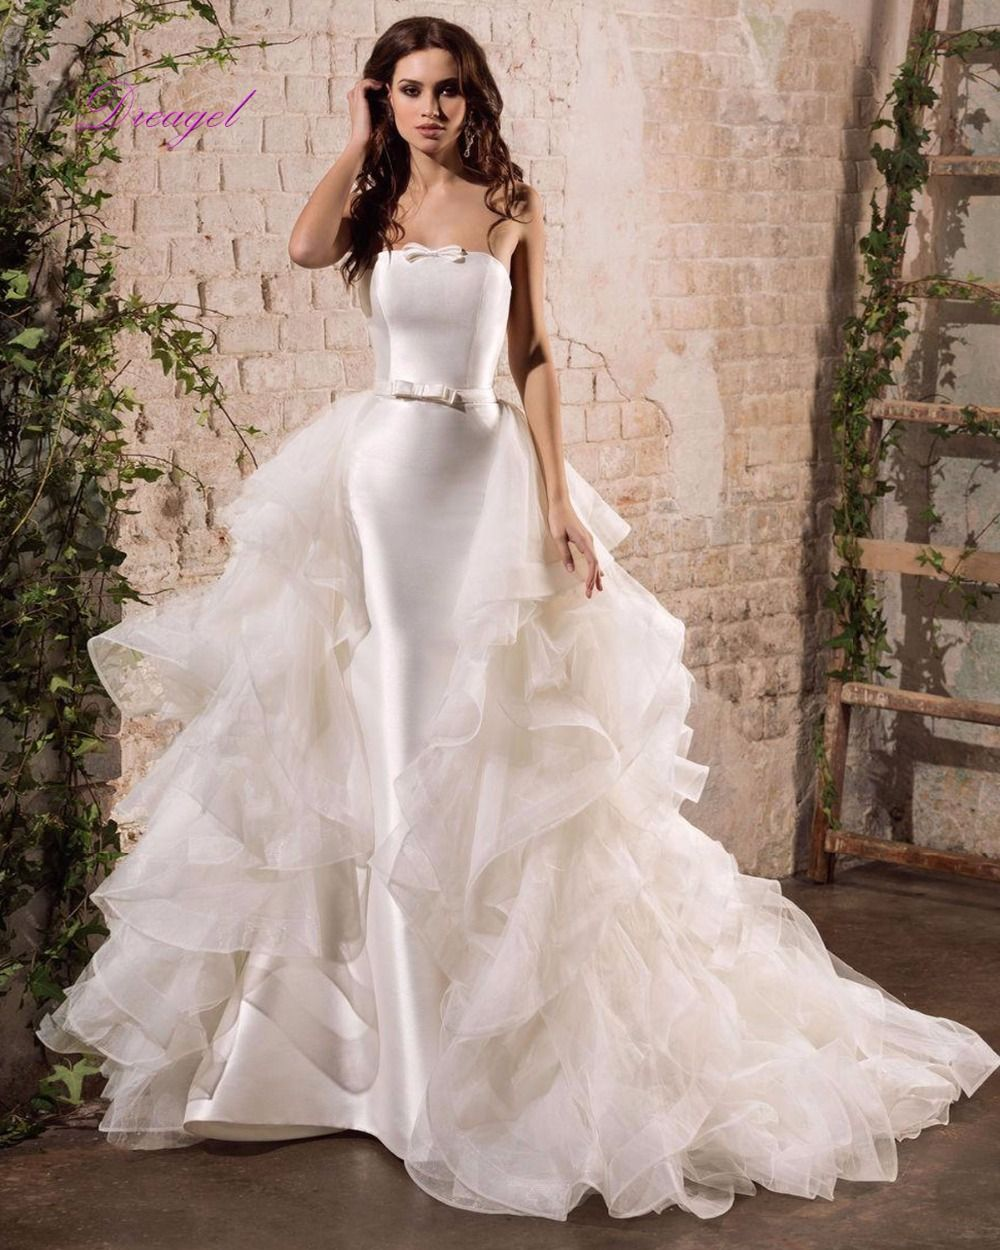 Wedding dress with removable train  Free Shipping Buy Best Dreagel New Designer Strapless Satin Mermaid